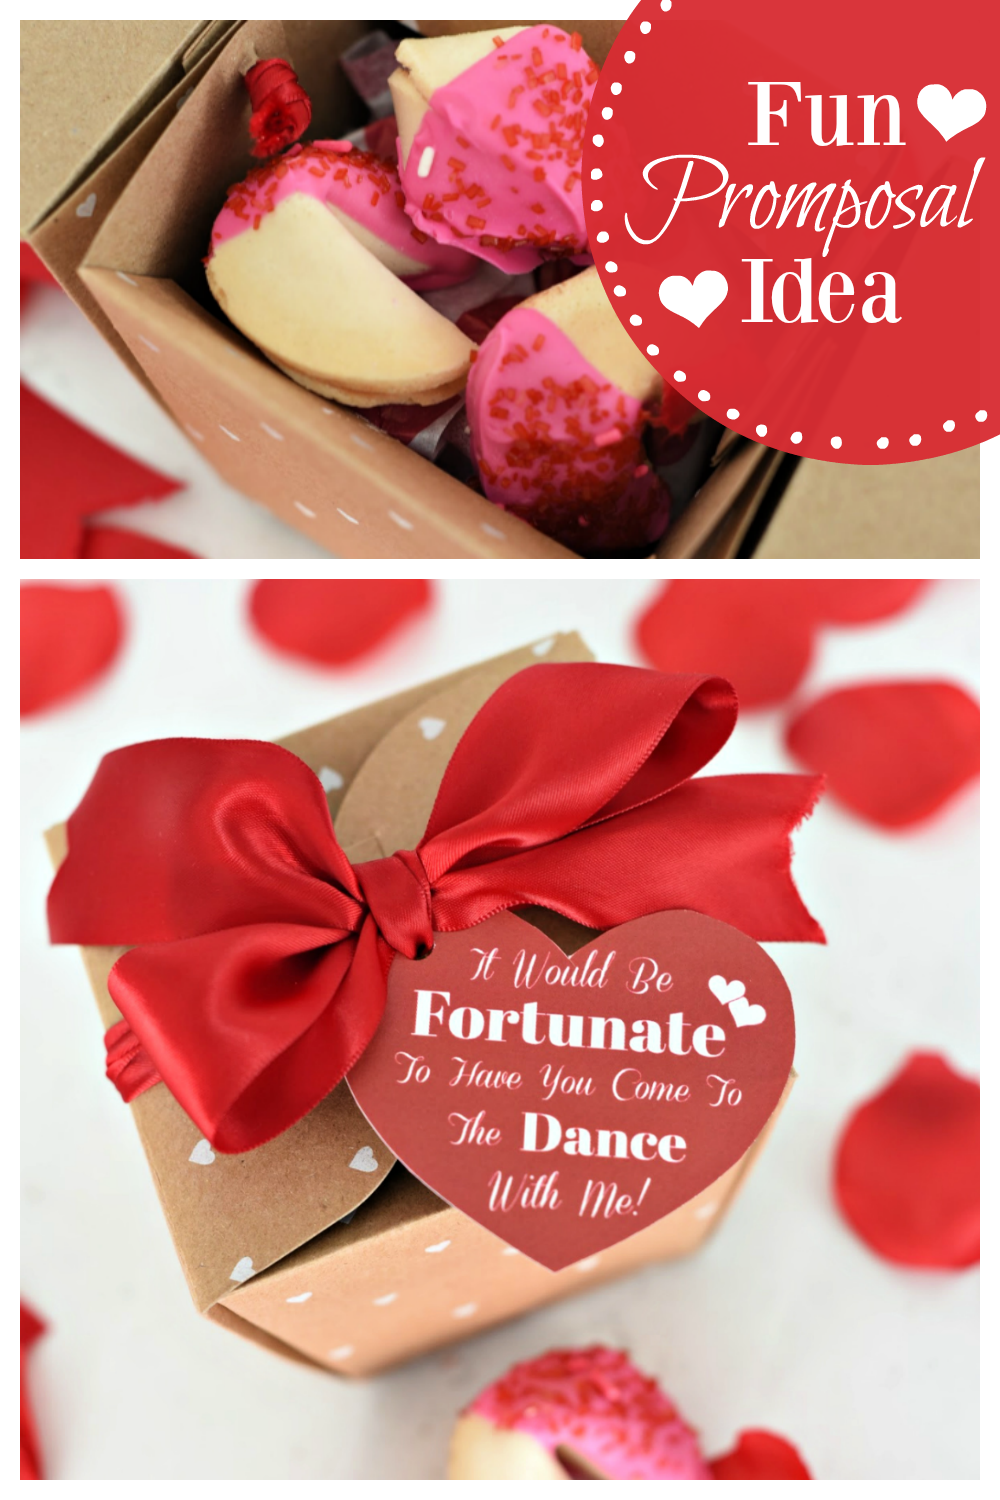 This fun Promposal idea is the perfect way to ask someone to the big dance! Have fun inviting someone to a dance with fun prom proposal ideas. #promposalideas #promposals #promproposals #fortunecookiepromposal #prom